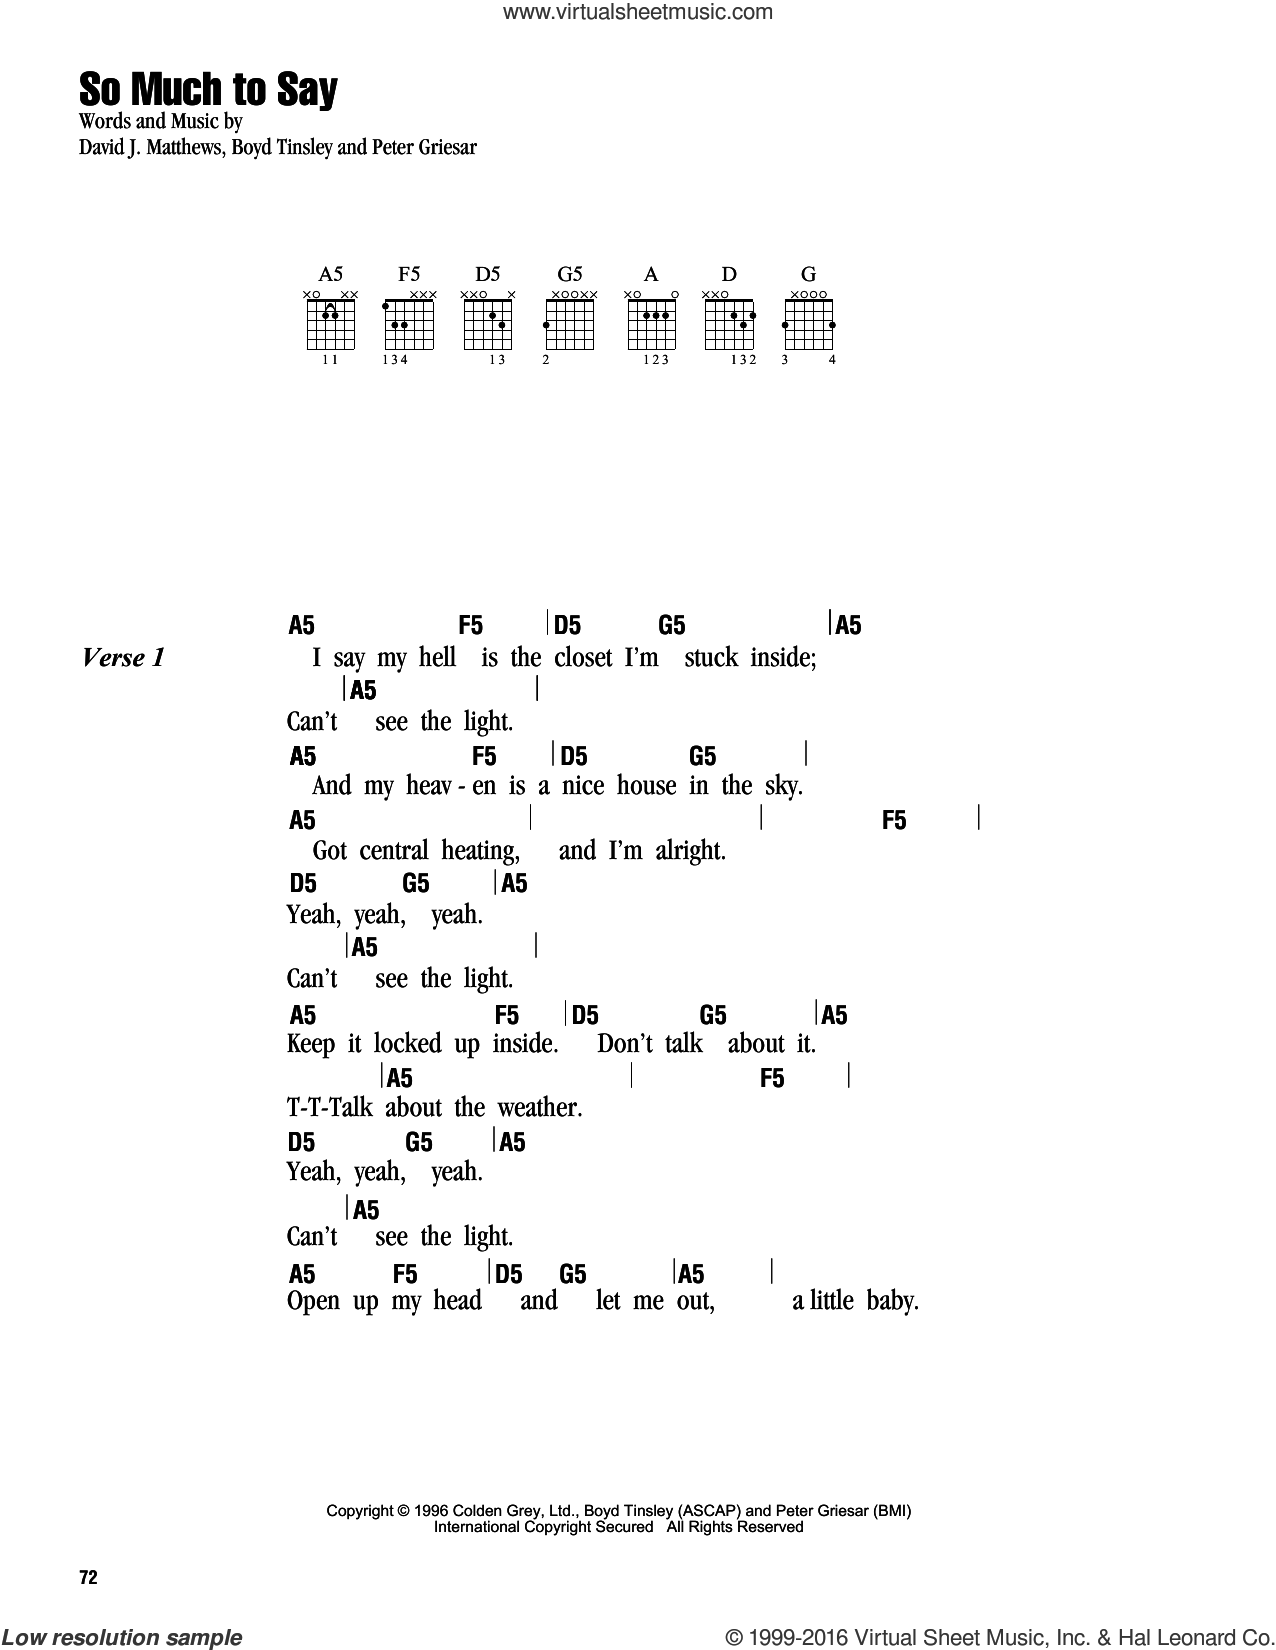 So Much To Say sheet music for guitar (chords) by Dave Matthews Band. Score Image Preview.